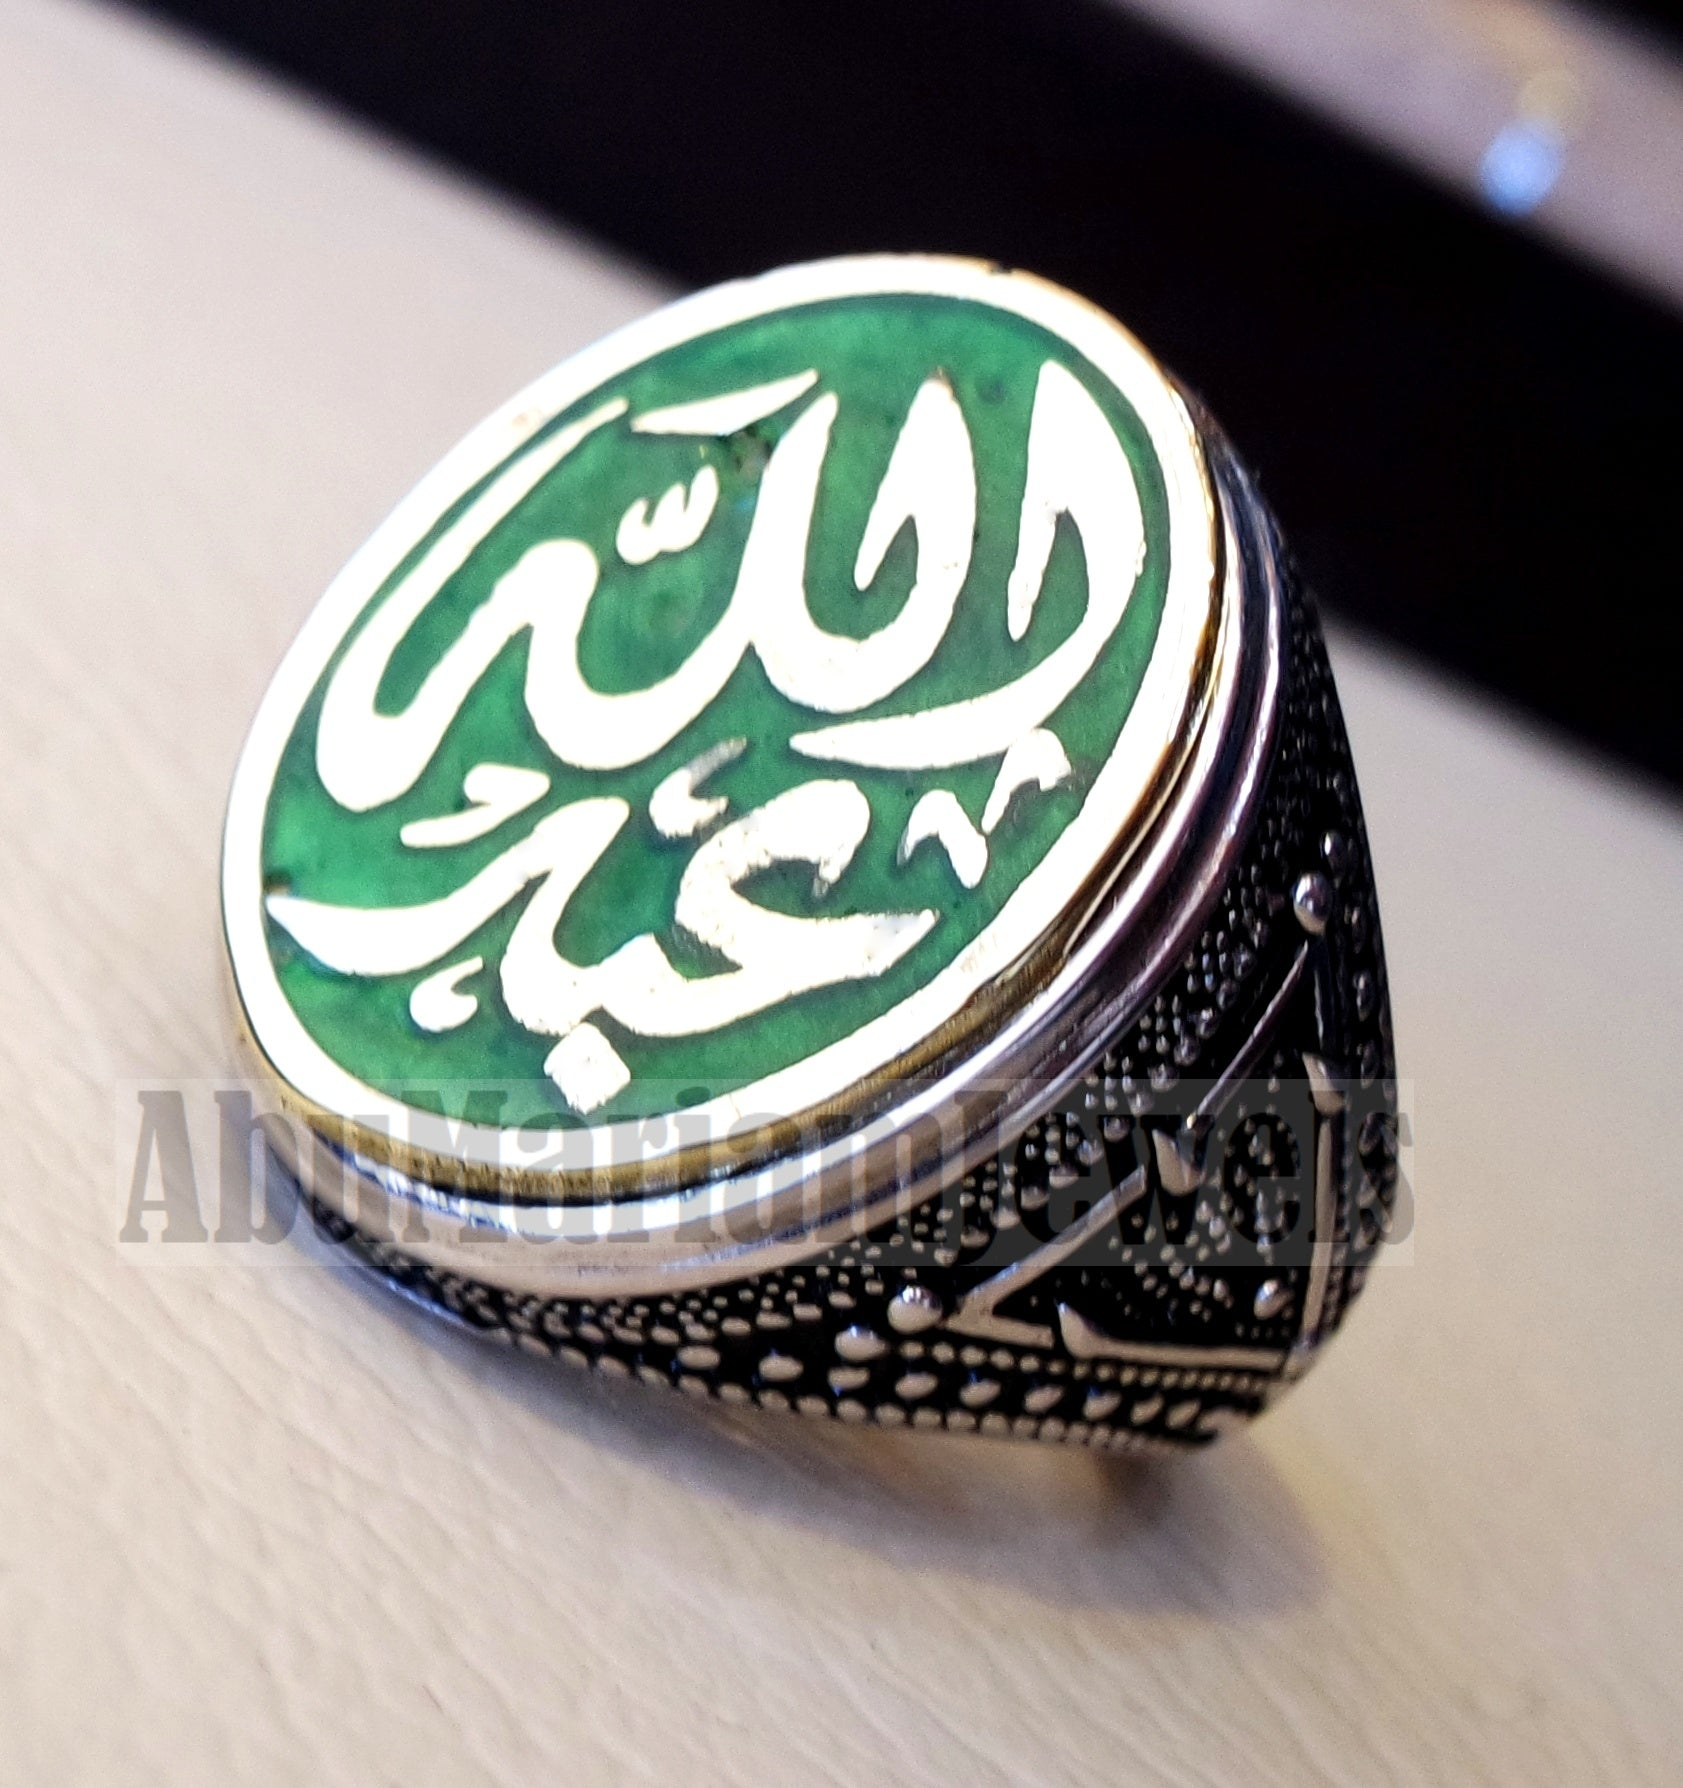 Customized Arabic calligraphy names ring personalized sterling silver 925 and bronze with green enamel TSE1002 خاتم اسم تفصيل